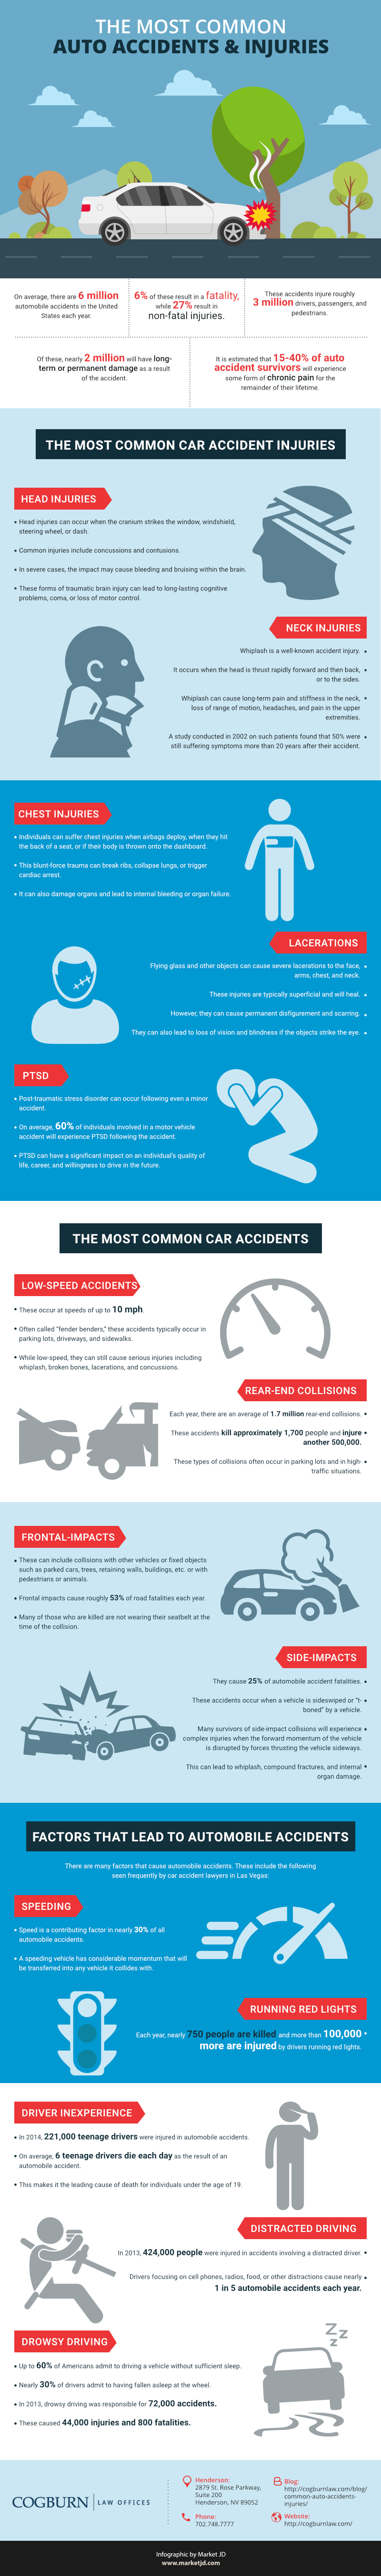 infographic Most Common Auto Injuries and Accidents